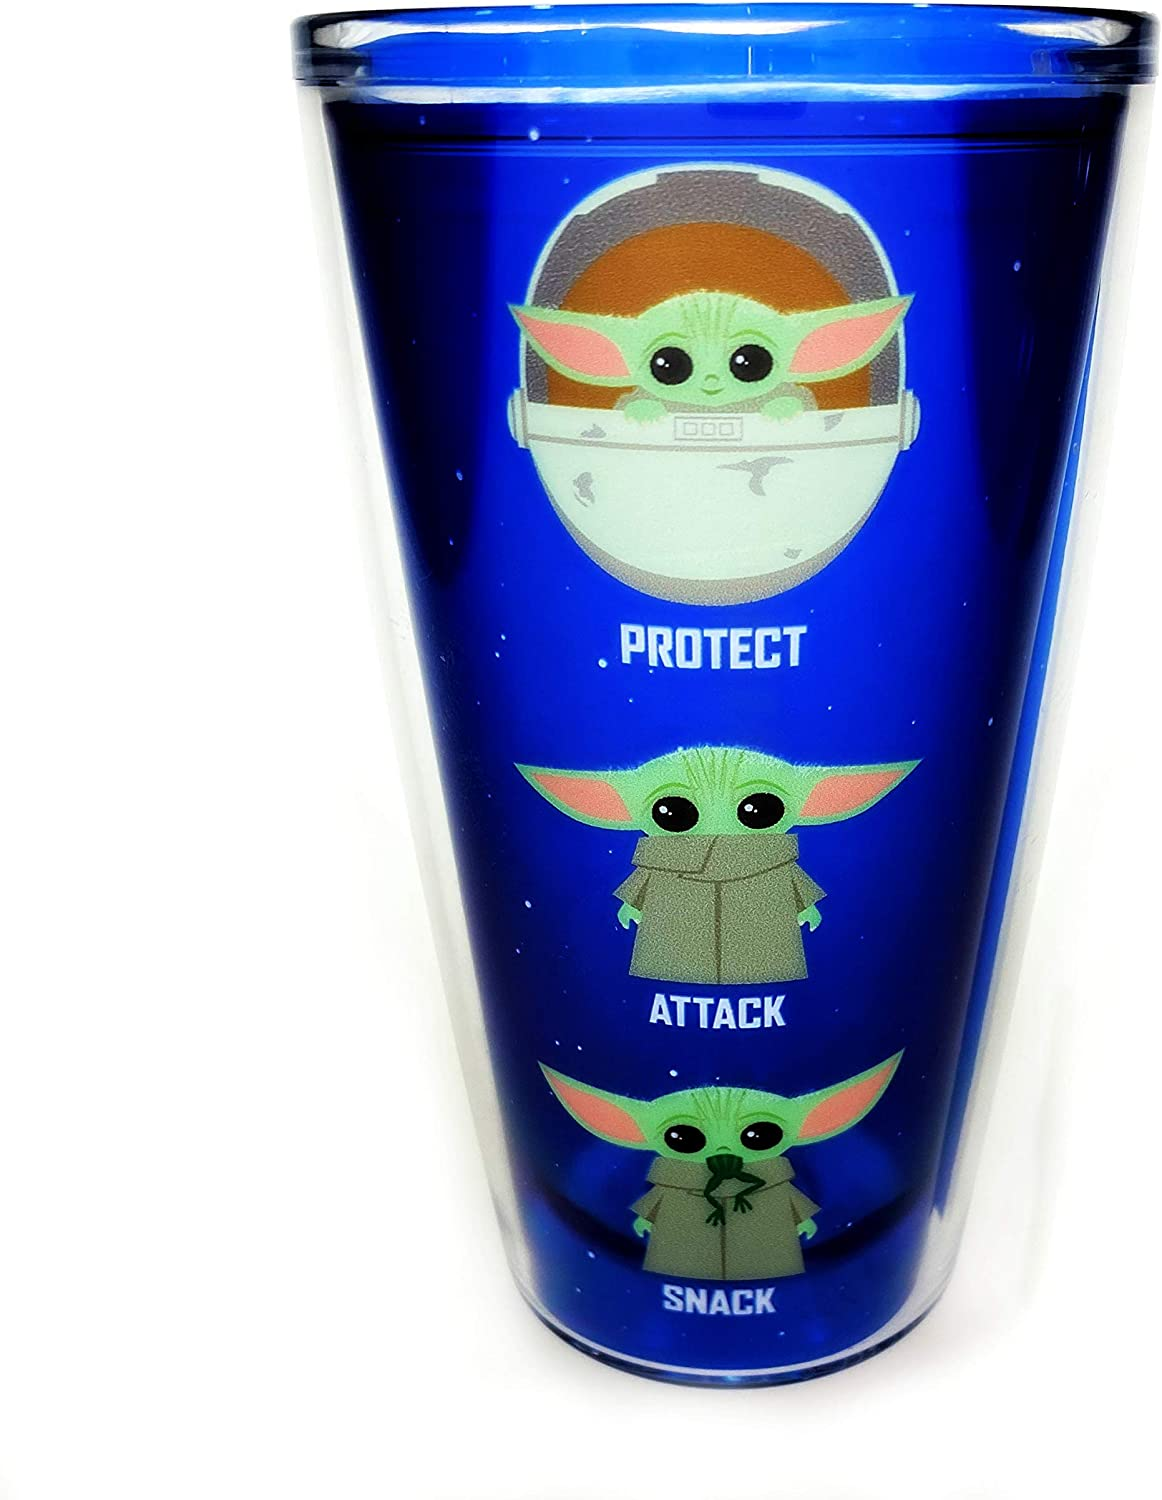 Mandalorian The Child Baby Yoda 16 oz Plastic Tumbler & Lid - Premium Double Walled Insulated Travel Tumbler Lid To Keep Hot Drink Hot and Cold Drinks Cold - Novelty Mug Gift Idea for Star Wars Fans